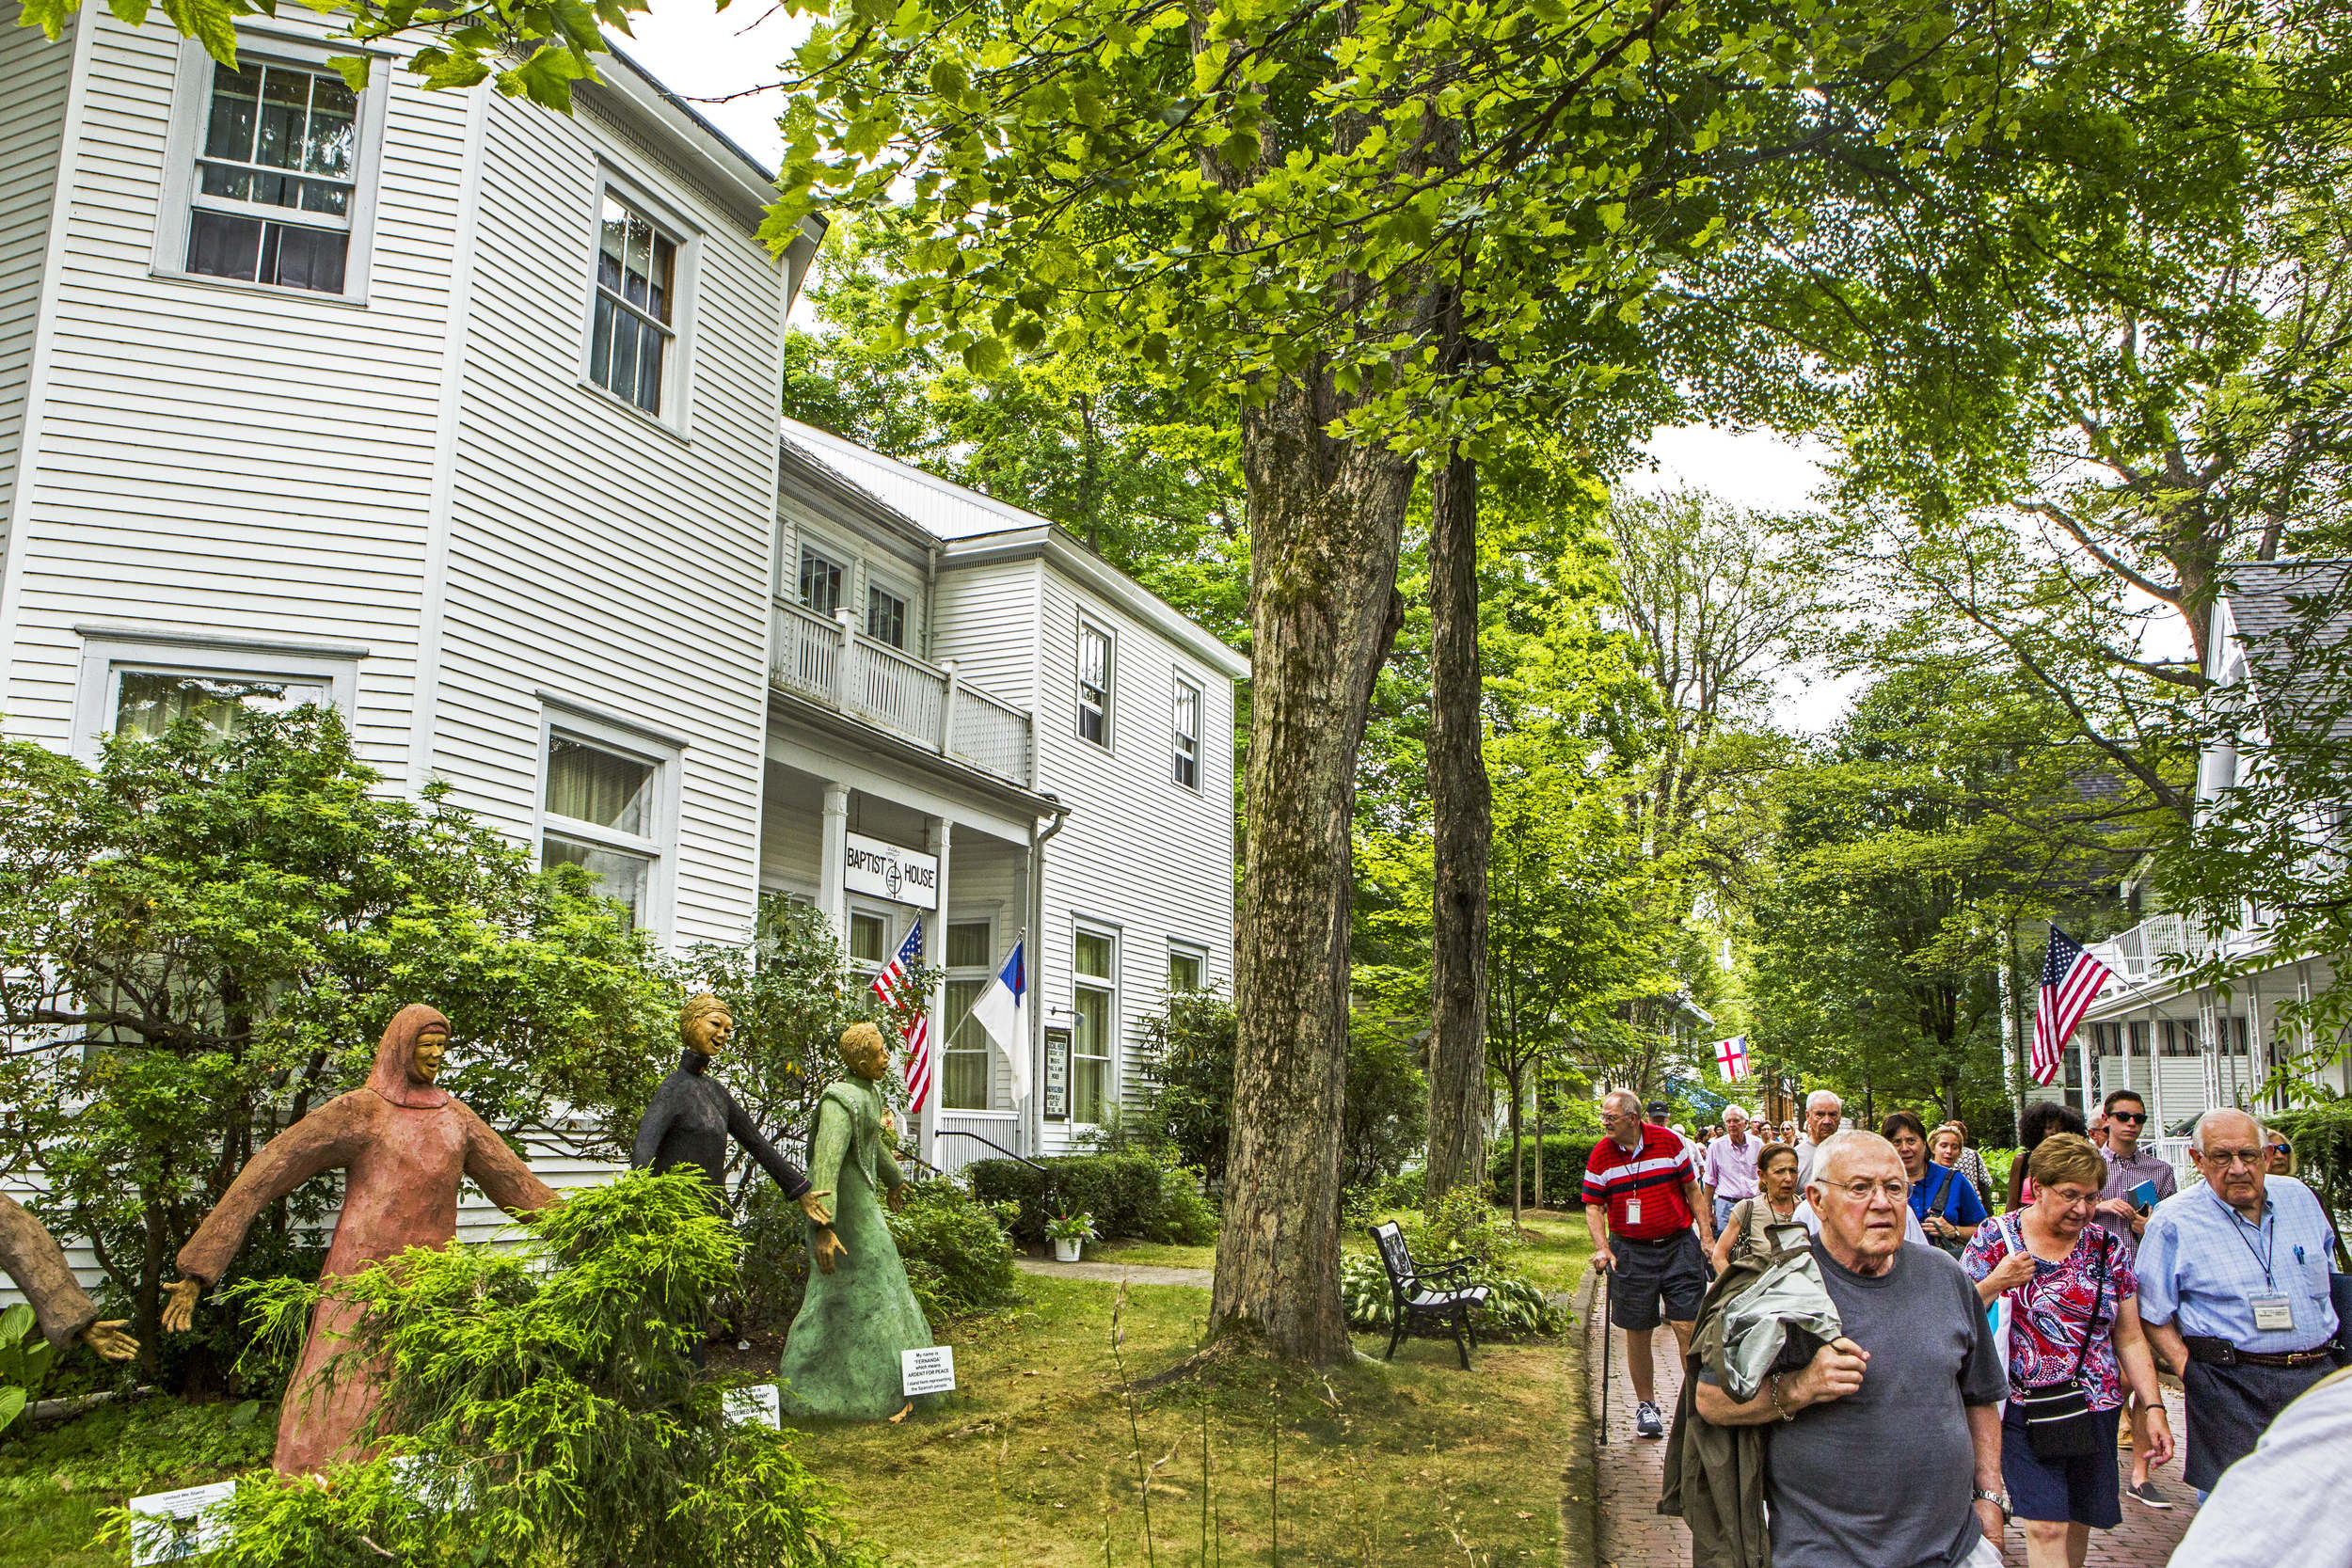 The Baptist House is located on the red brick walk along with a majority of the denominational houses in Chautauqua. Outside of their house are several colorful sculptures representing people of faith from different cultures.